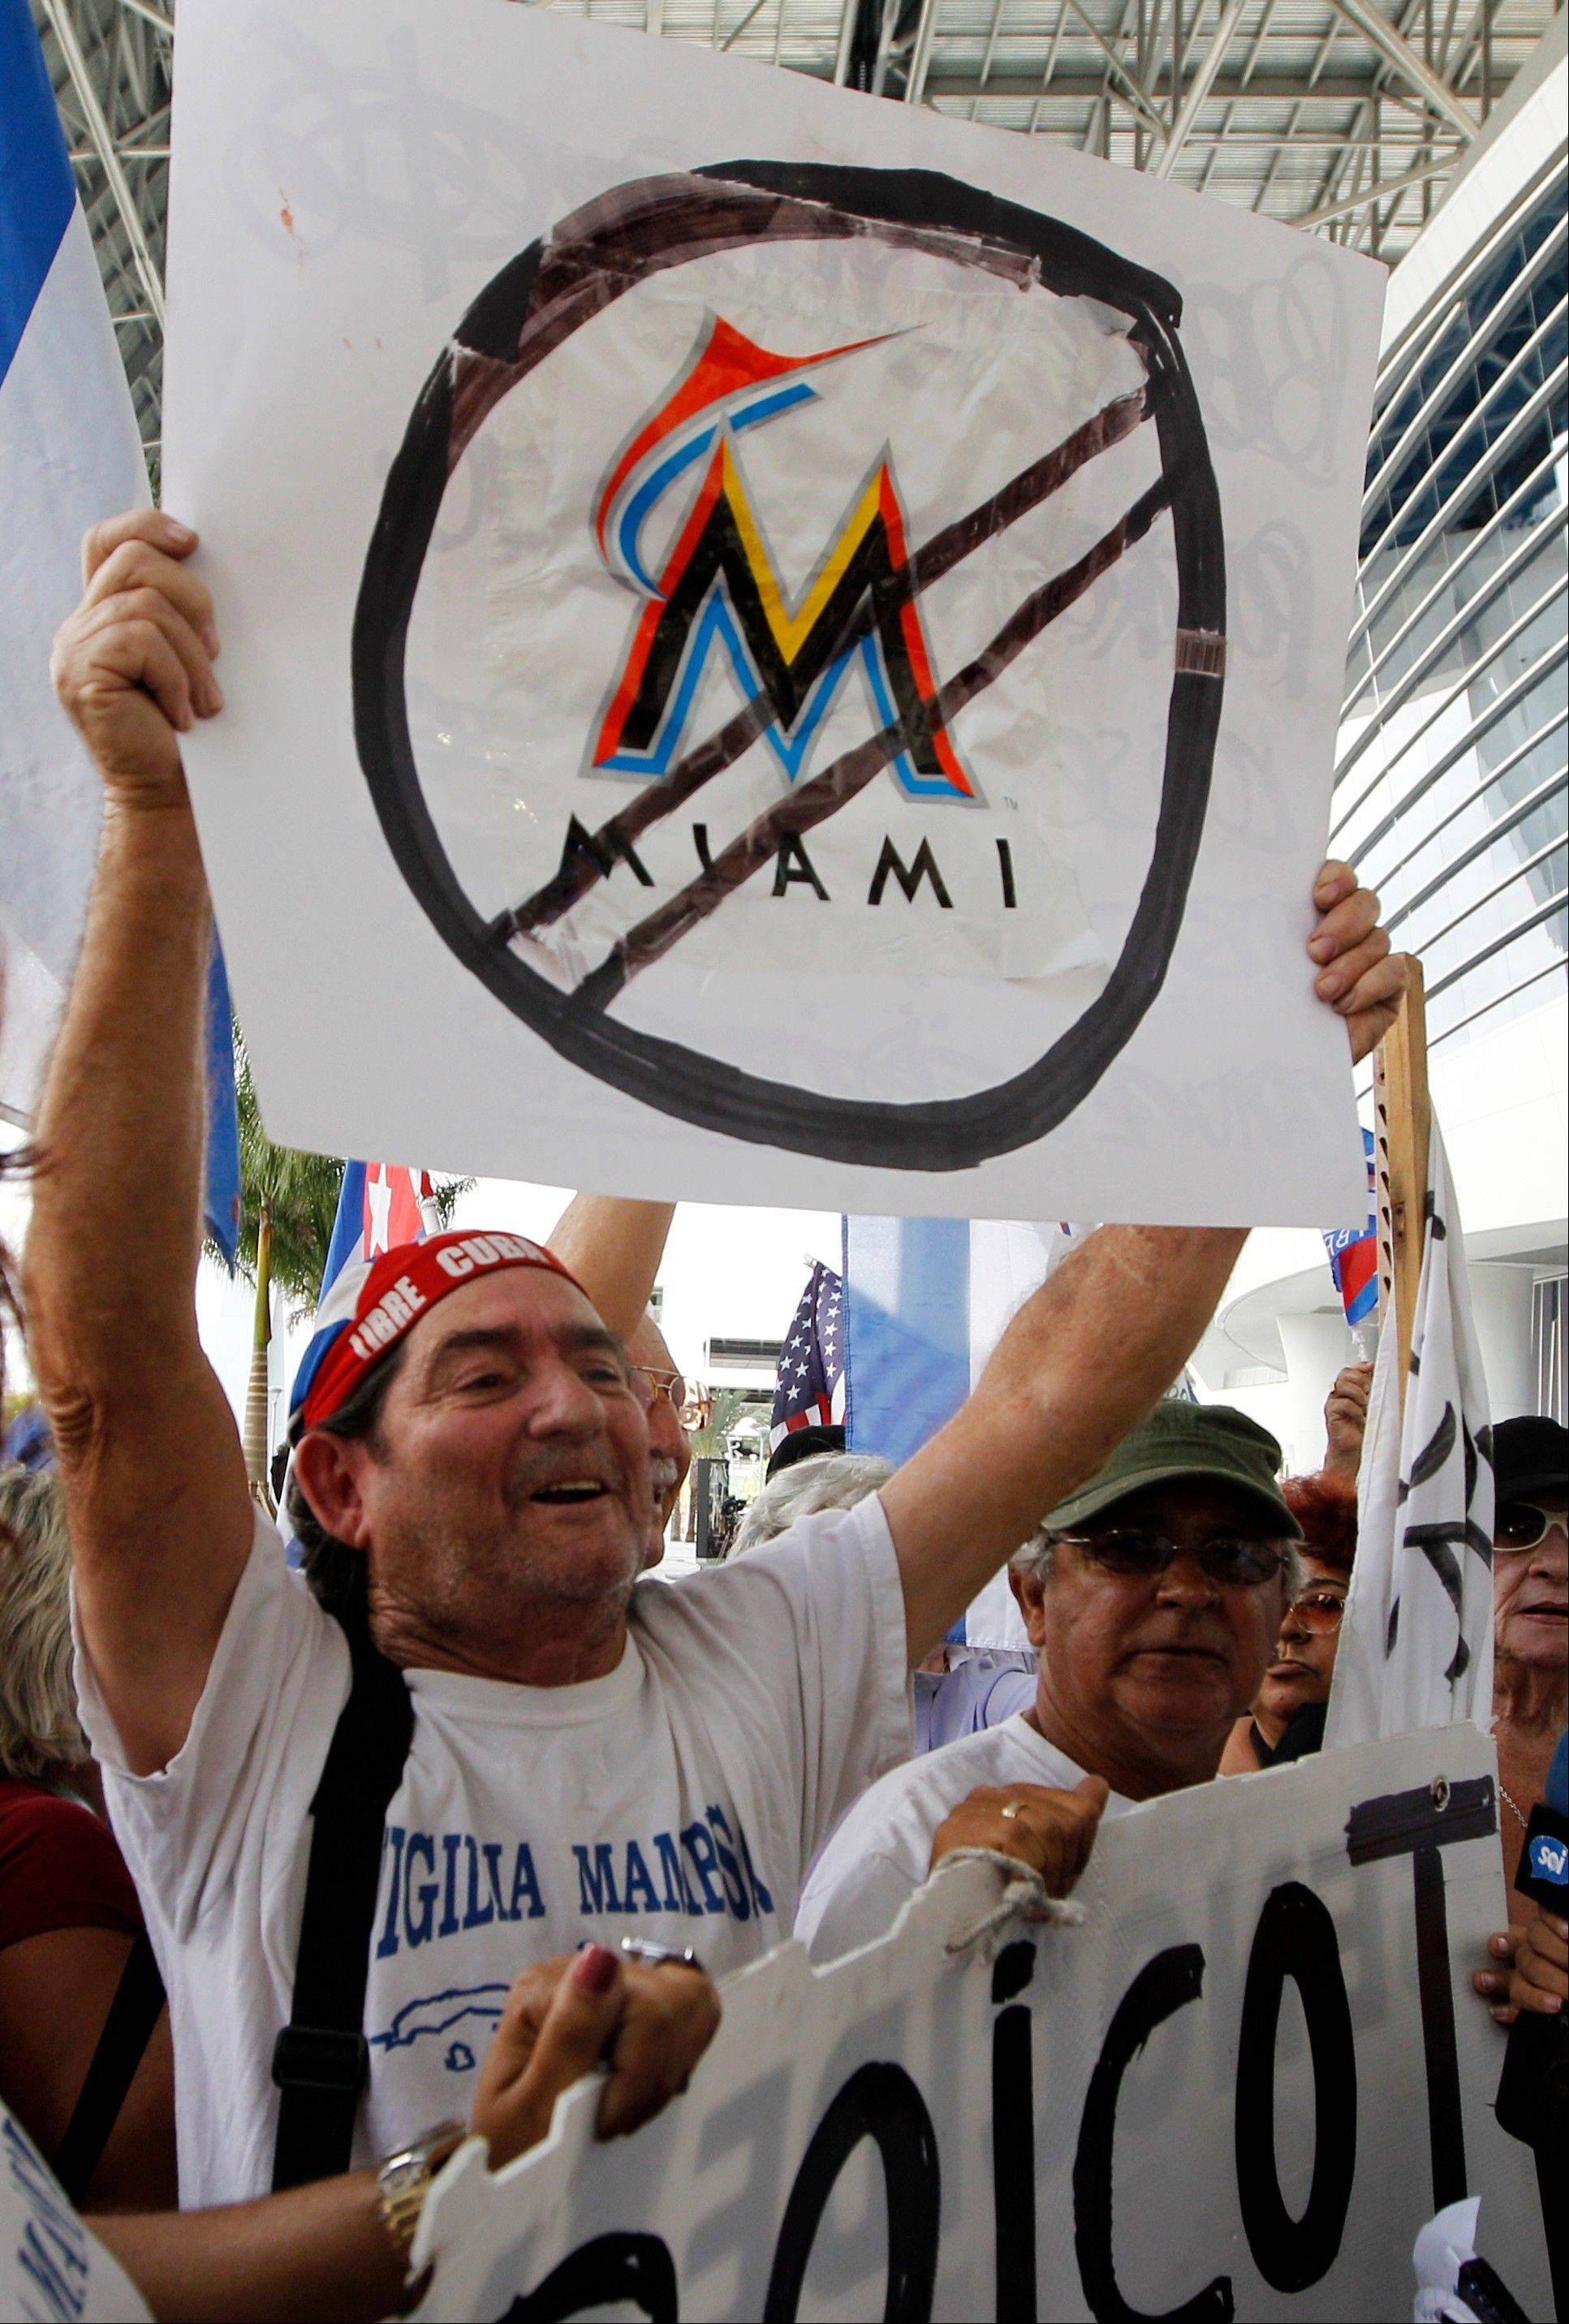 Protestors hold signs outside Marlins Stadium in Miami, where Marlins manager Ozzie Guillen was speaking at a news conference on Tuesday. Guillen has been suspended for five games because of his comments about Fidel Castro. He has again apologized and says he accepts the punishment.